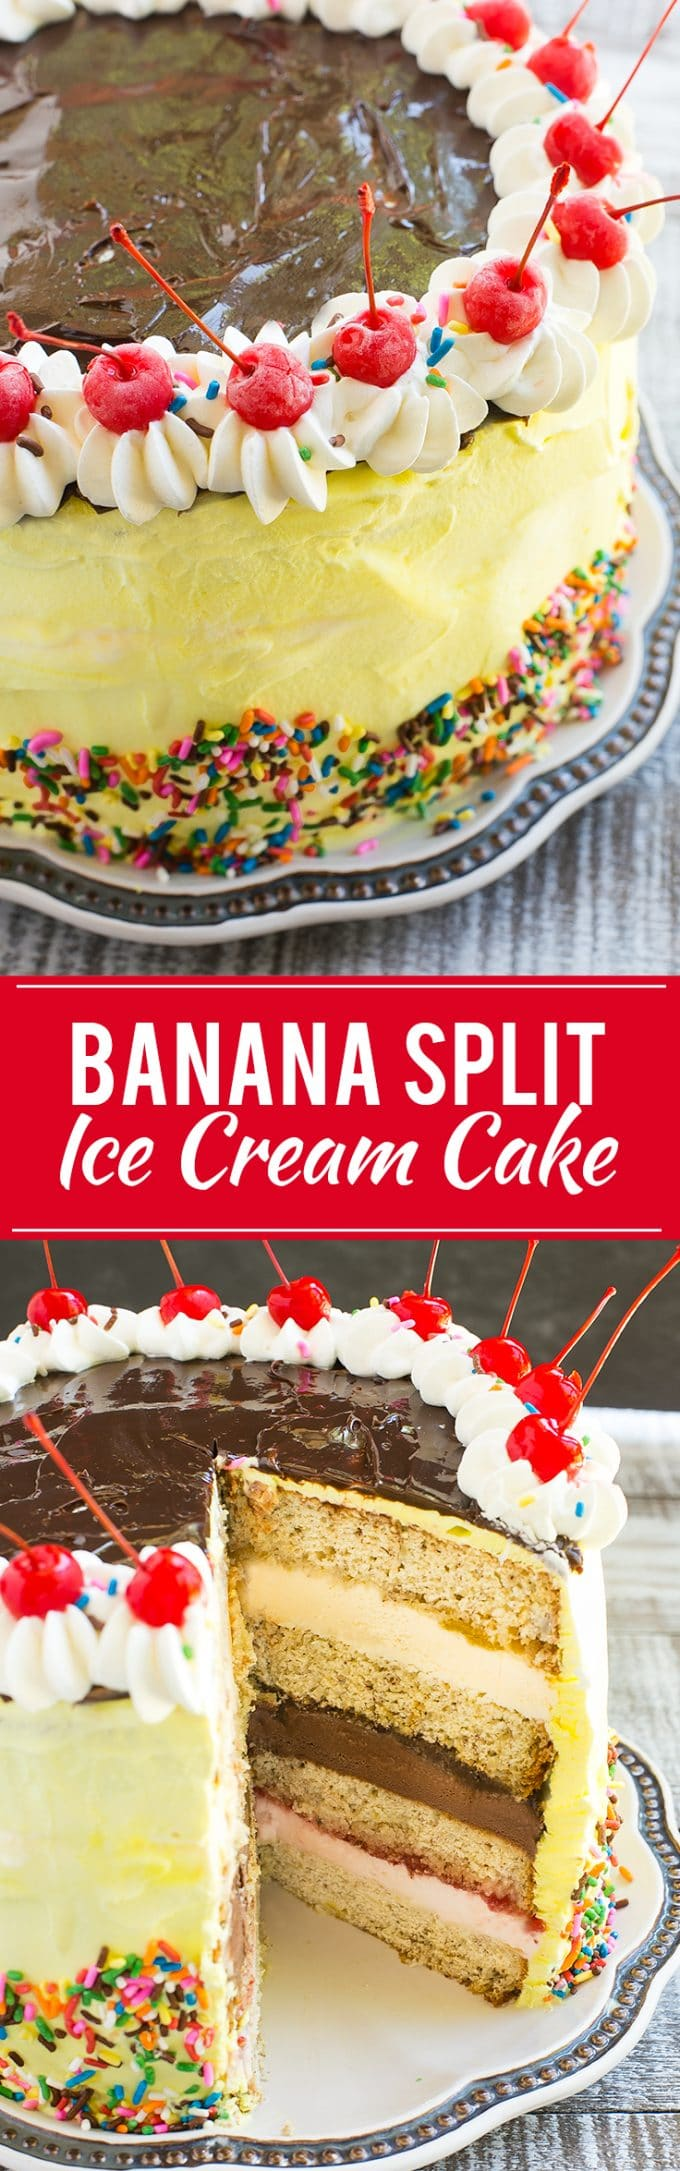 Banana Split Ice Cream Cake Recipe | Banana Ice Cream Cake | Banana Split Ice Cream | Best Ice Cream Cake